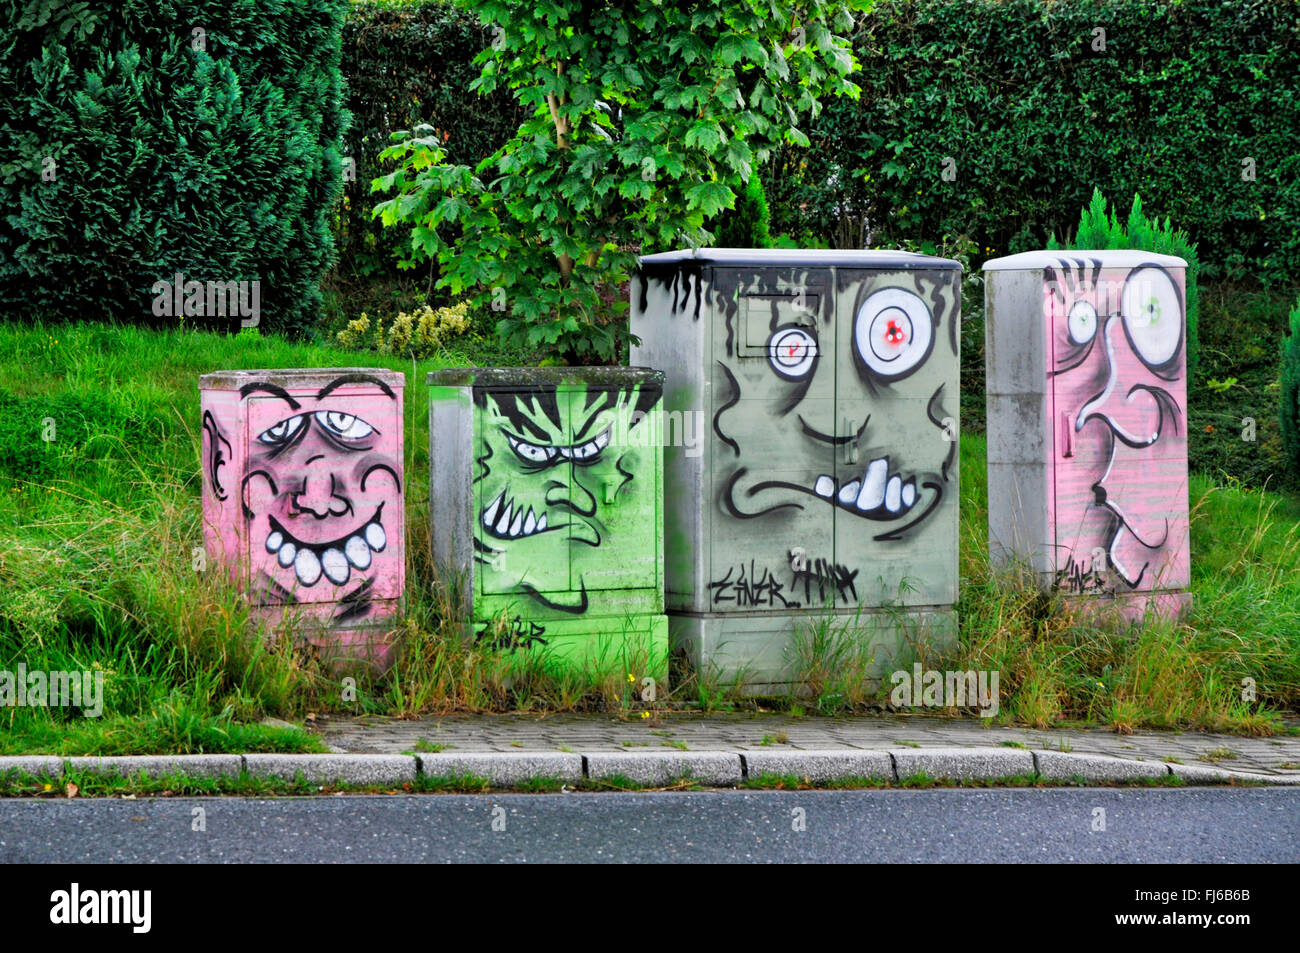 fuse box monsters, Germany, North Rhine-Westphalia, Ruhr Area, Bochum Stock Photo